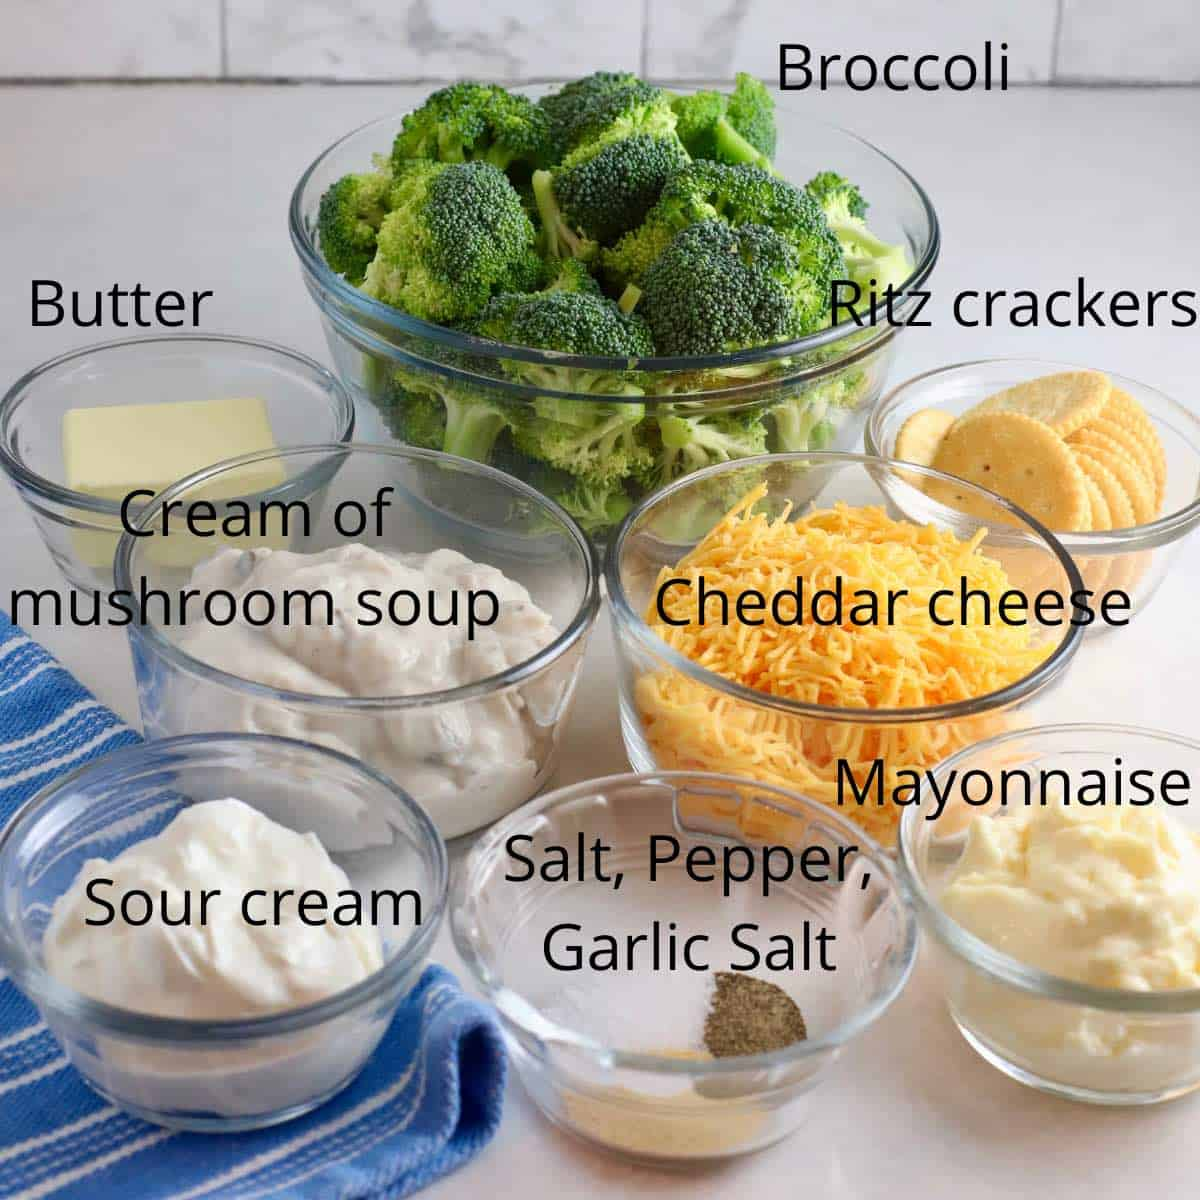 Ingredients for broccoli cheese casserole including broccoli, and sour cream.